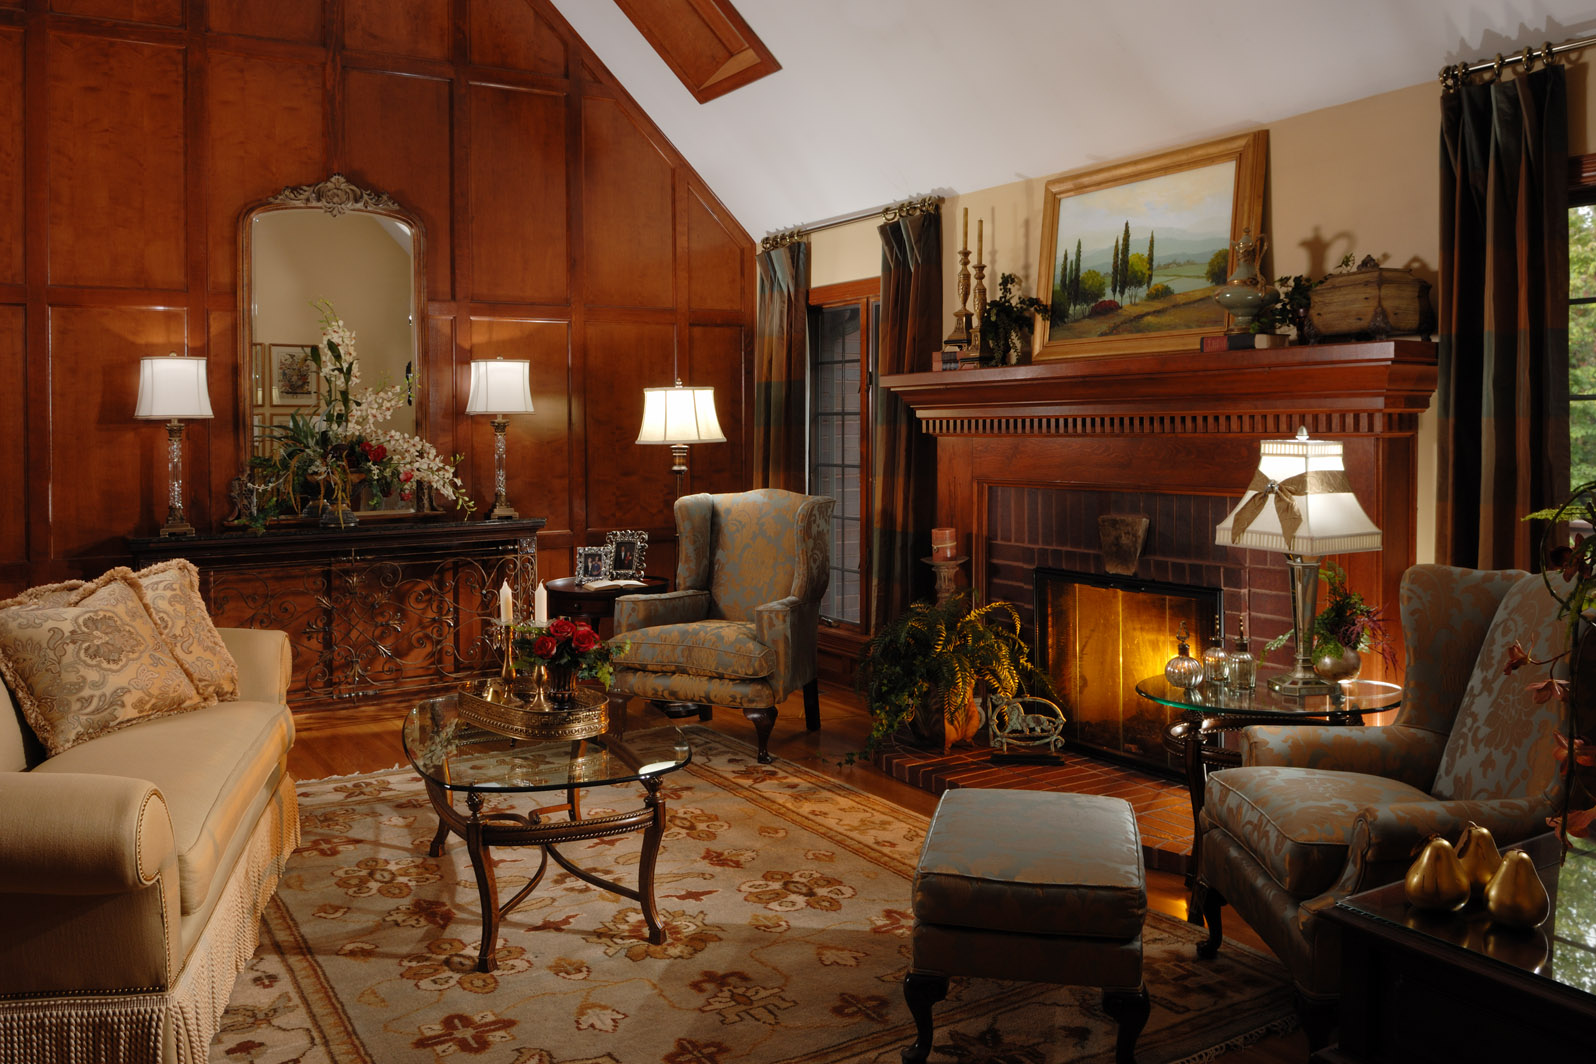 7 Steps to a BEAUTIFUL Living Room! | Northside Decorating ... on Beautiful Room Pics  id=46778